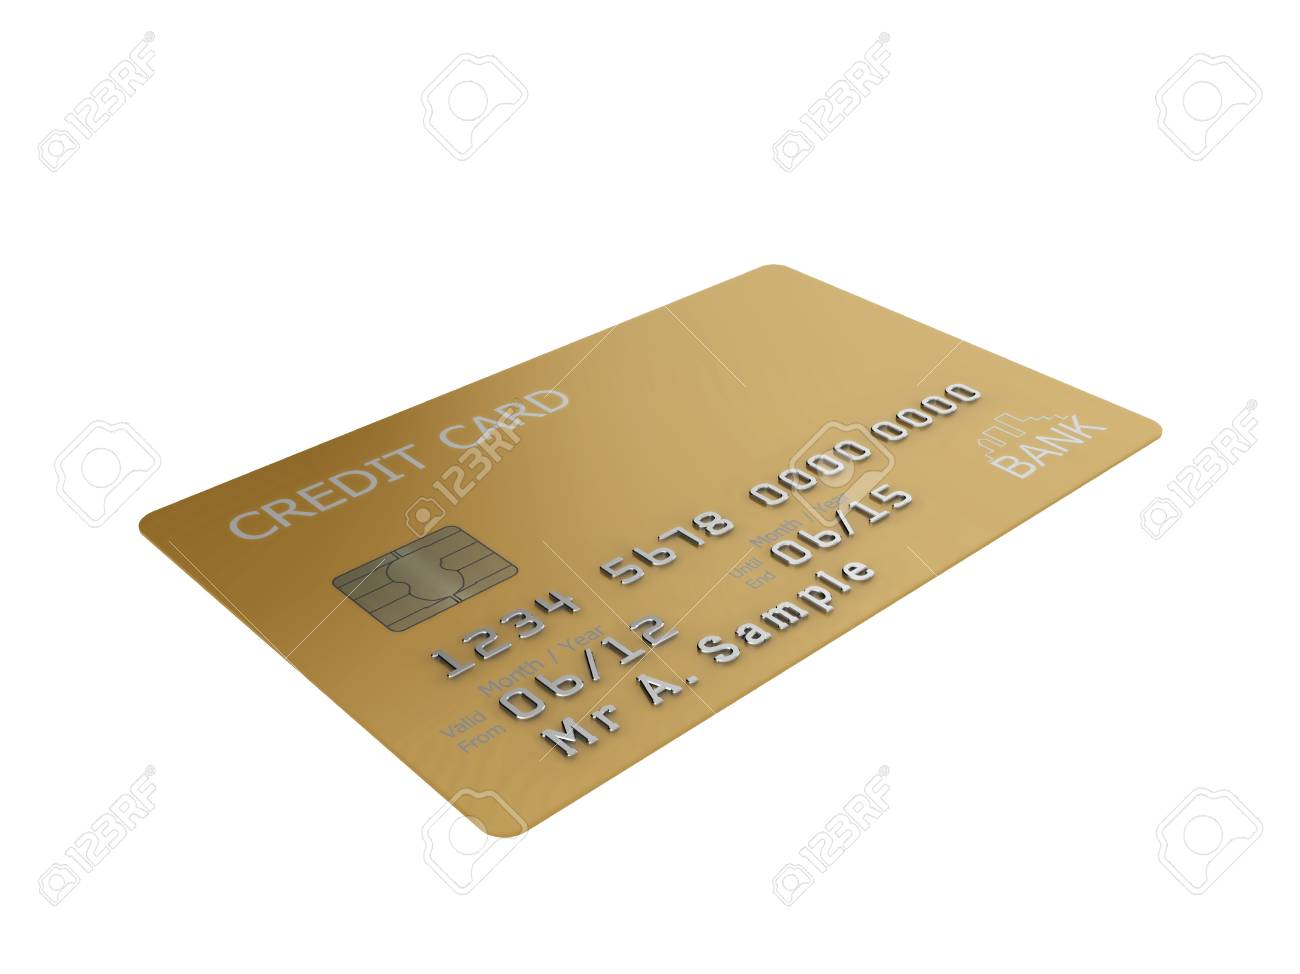 Realistic illustration of a gold credit card with fictional details, isolated on a white background. Stock Photo - 8238782